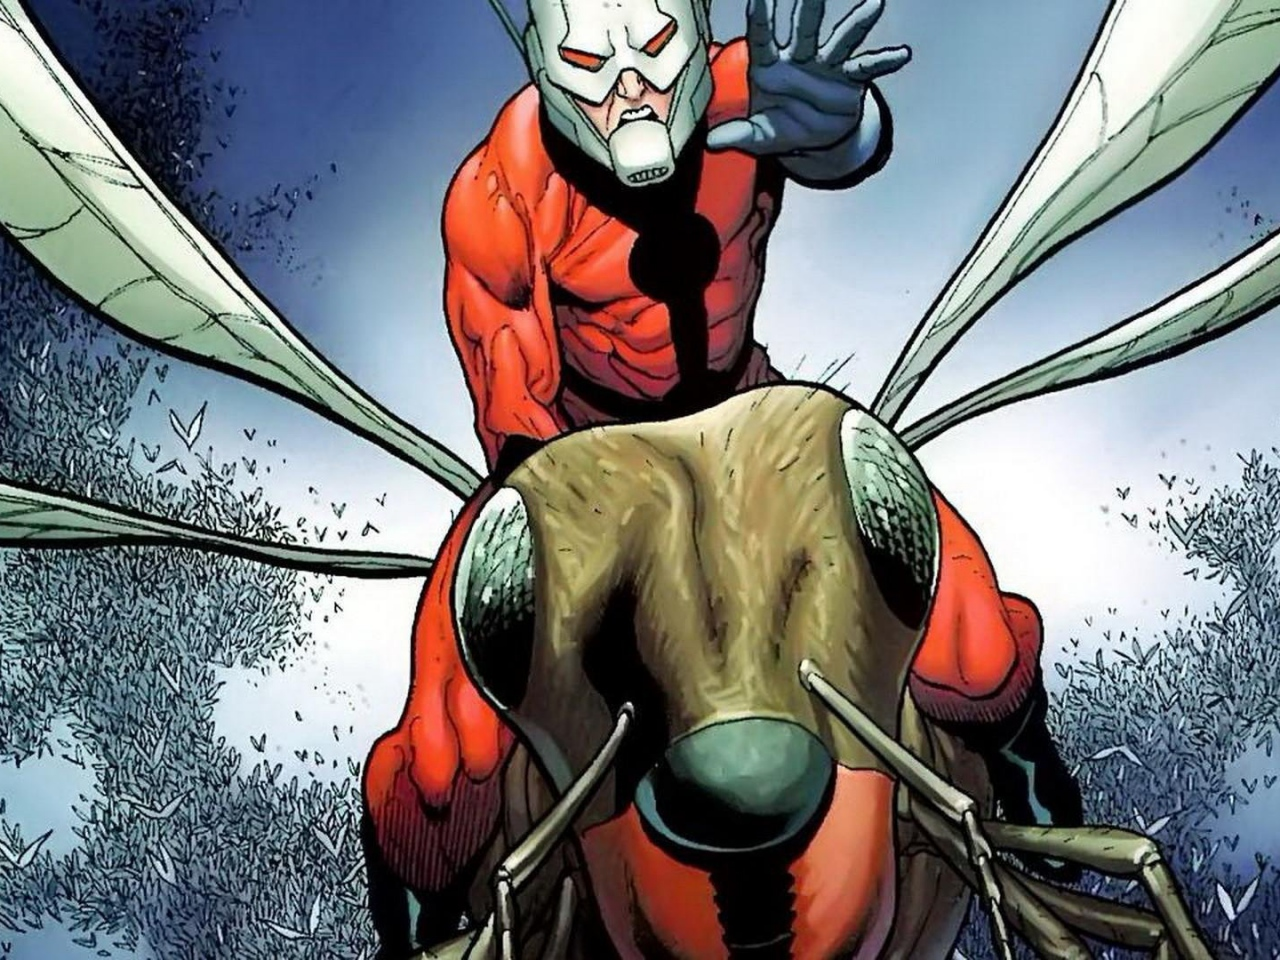 Download Wallpaper 1280x960 ant man the irredeemable ant man marvel 1280x960